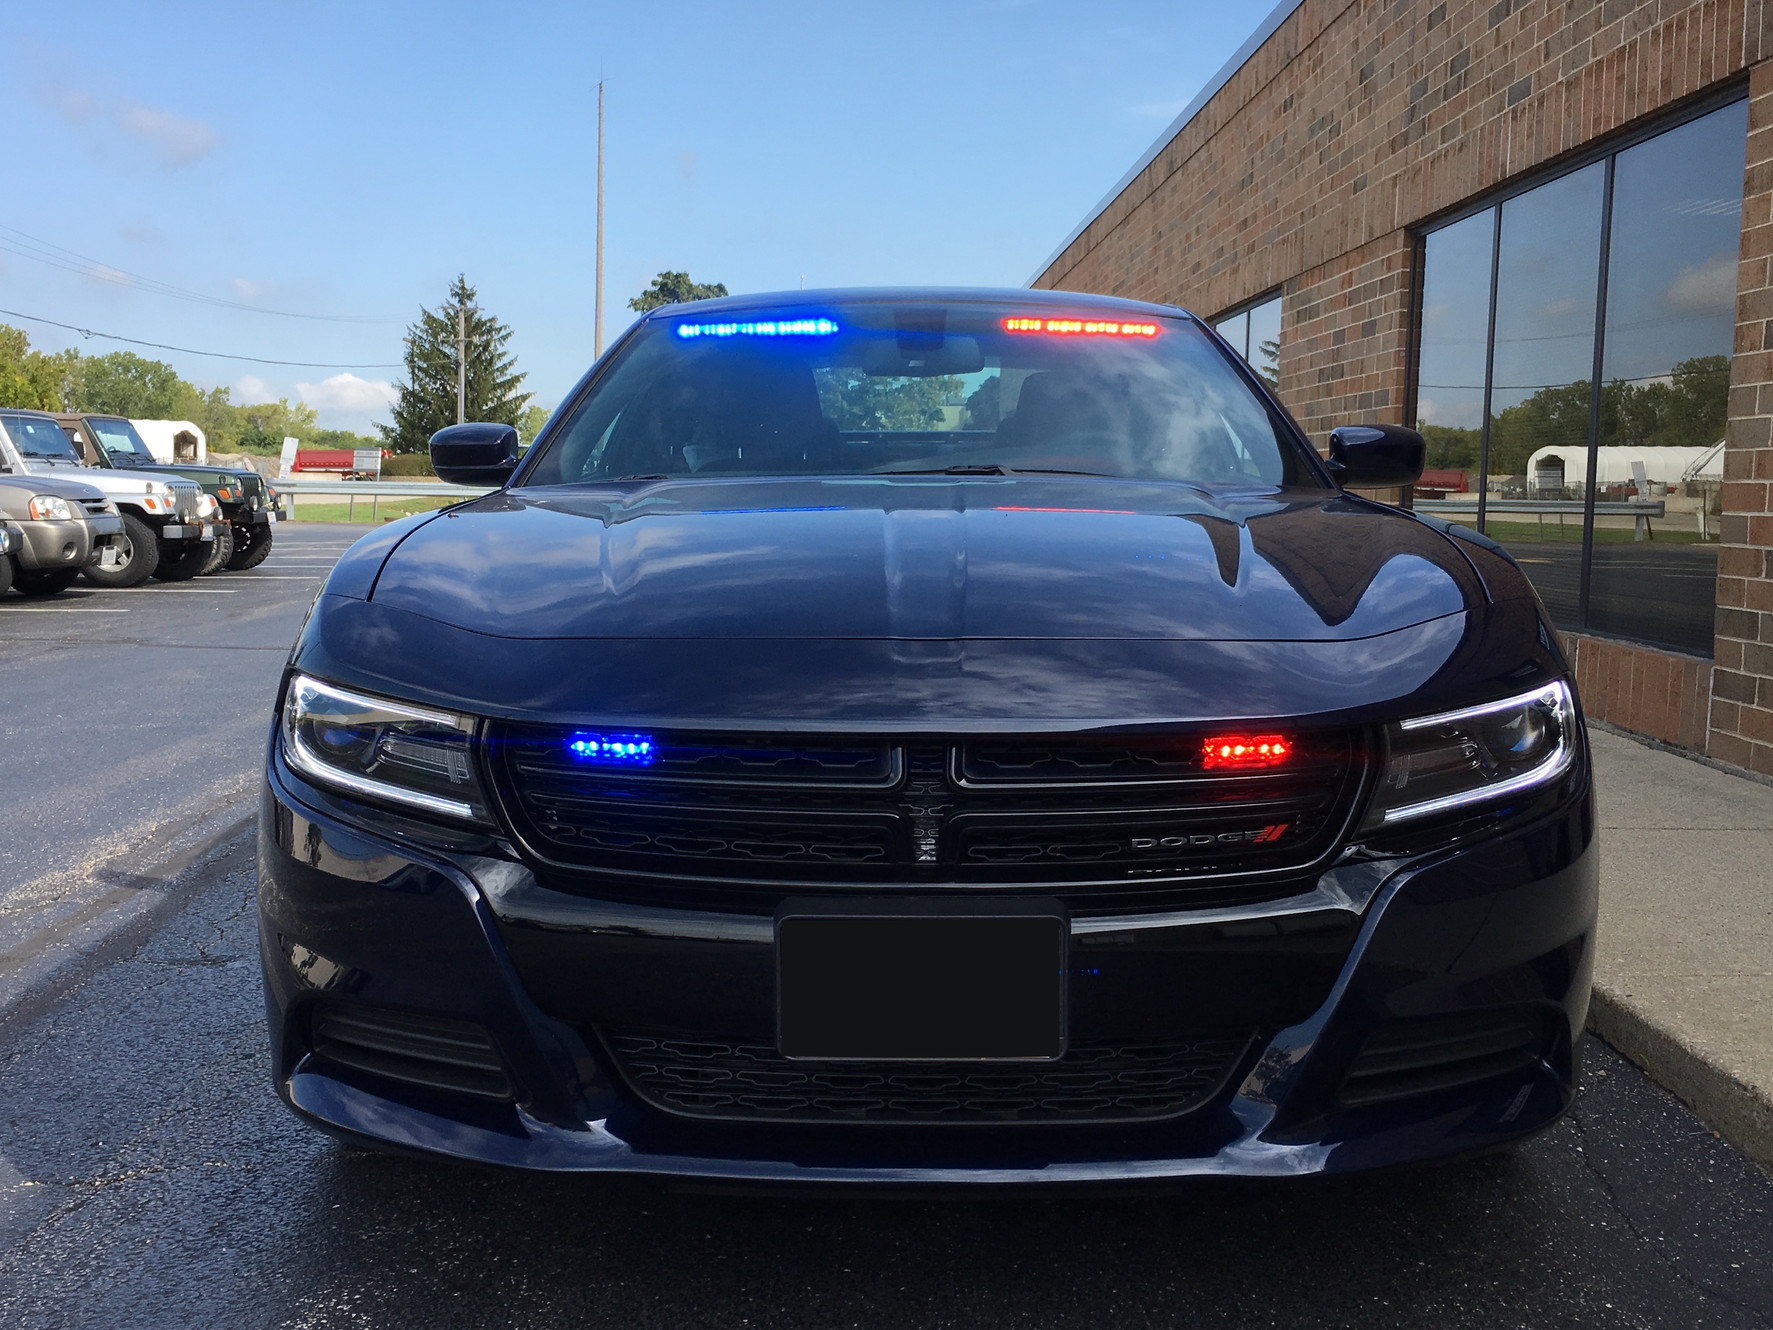 2017 Dodge Charger - Unmarked